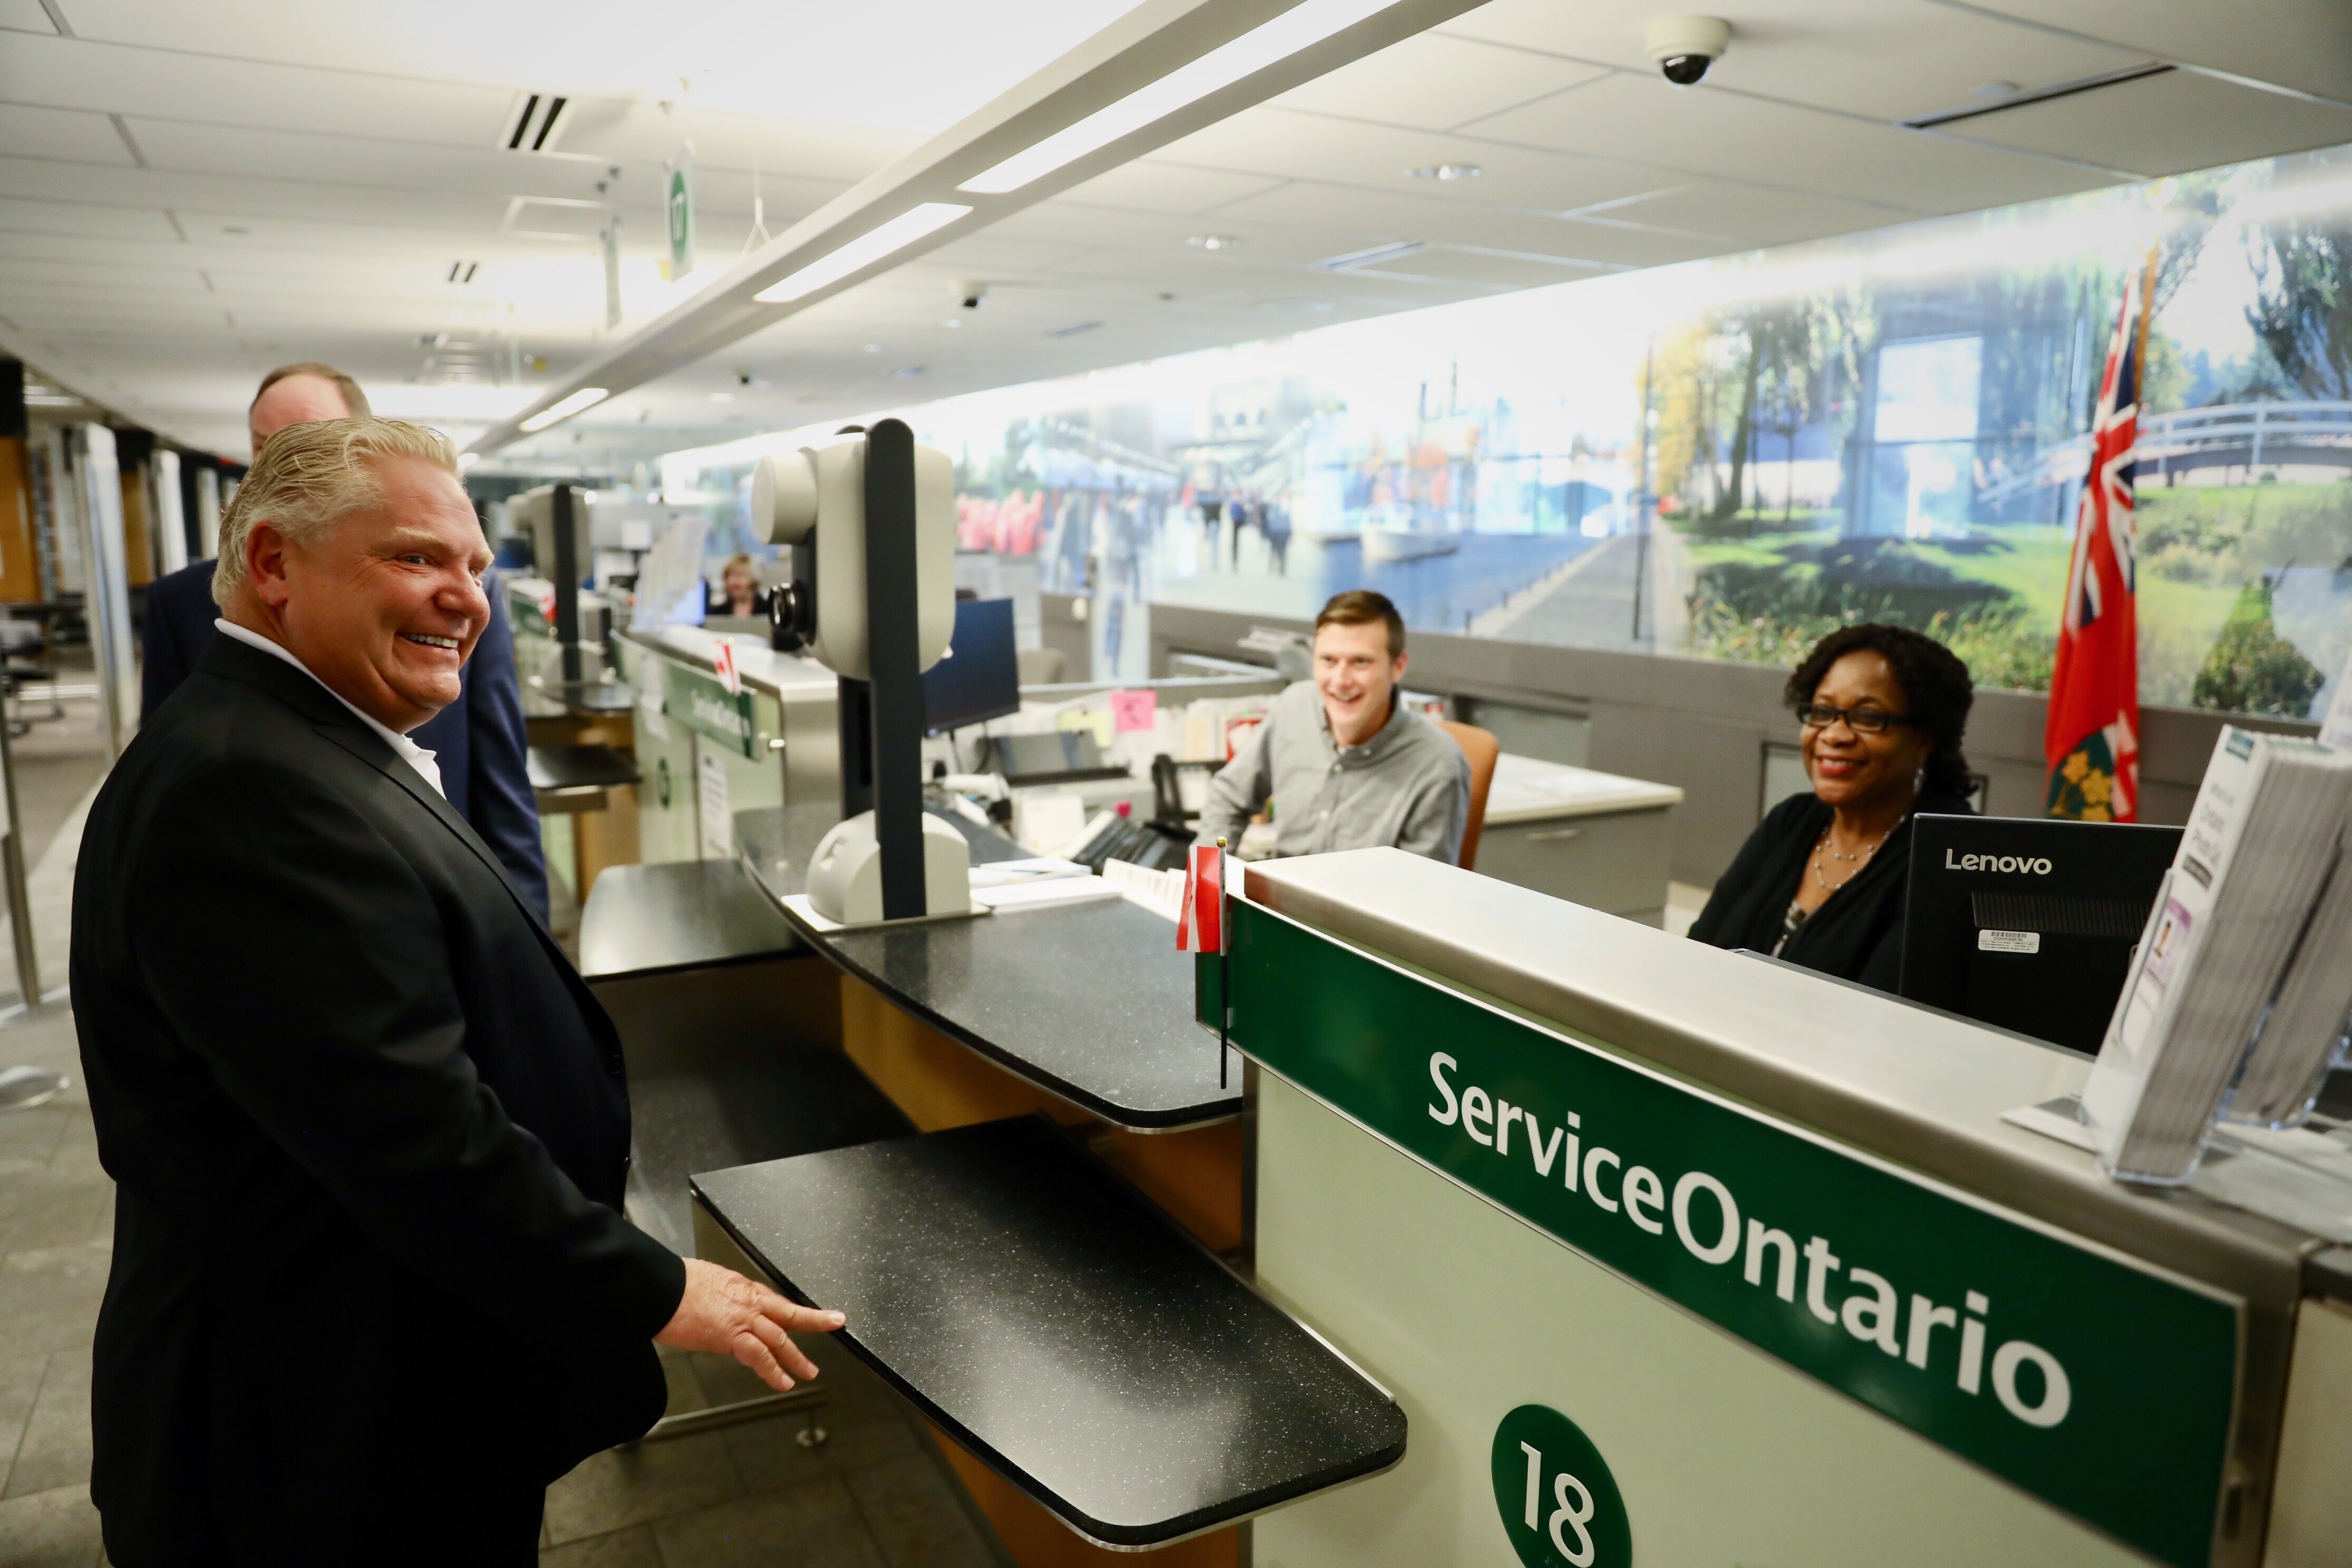 Ontario Pumps Brakes On Driving Fee Increases